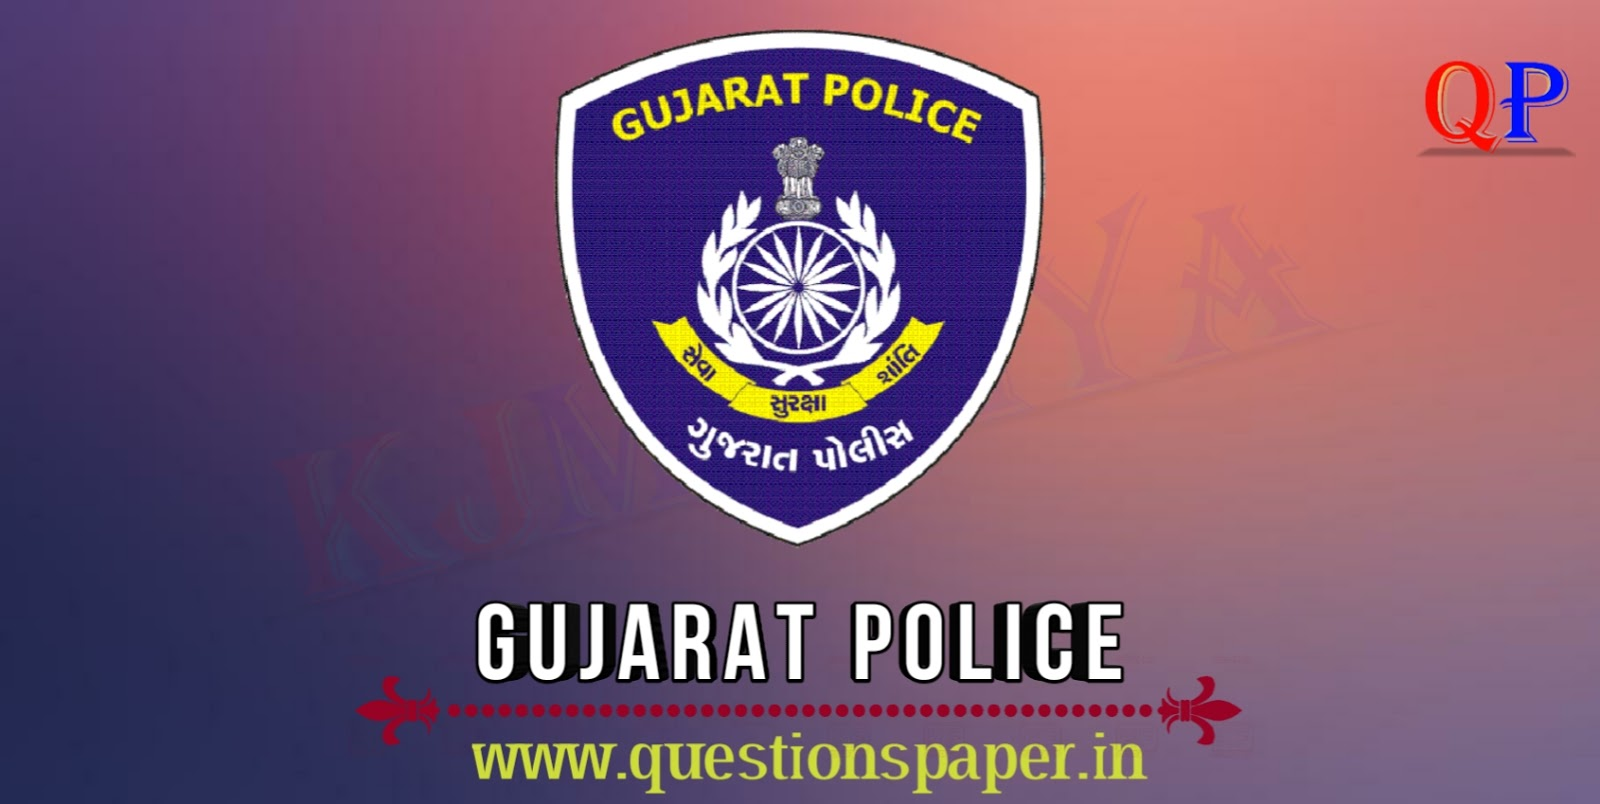 GPSC Police Inspector (Advt. No. 112/2018-19) Question Paper (30-06-2019)